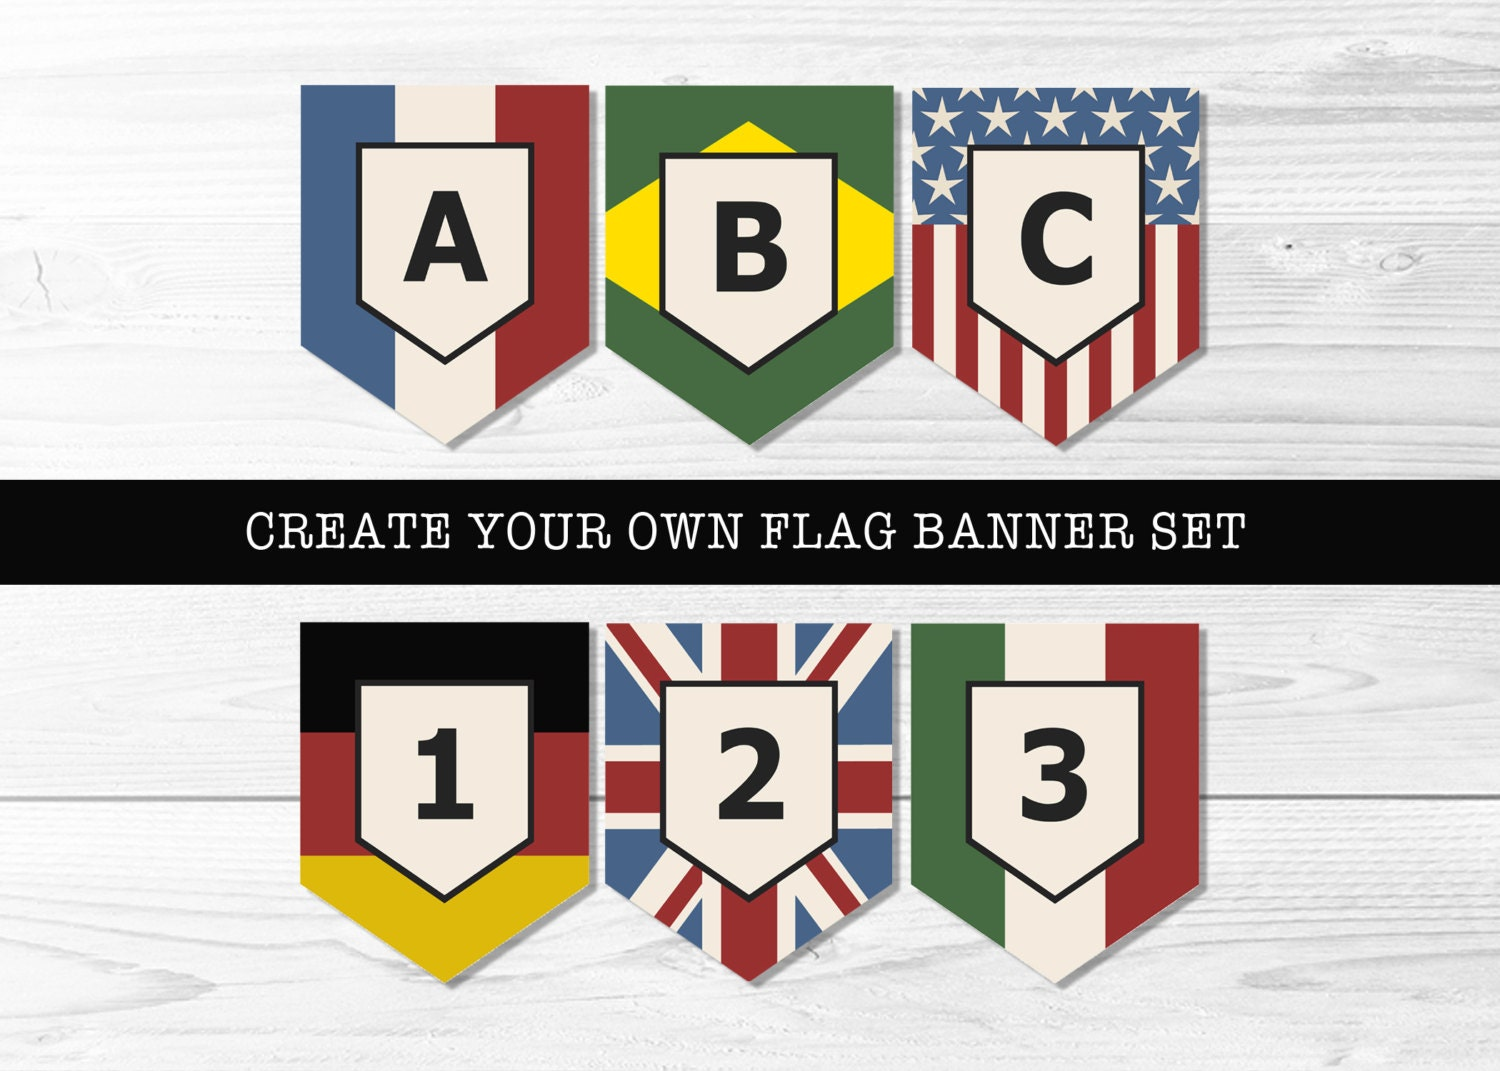 Custom Country Flag Banner Set Create Your Own by